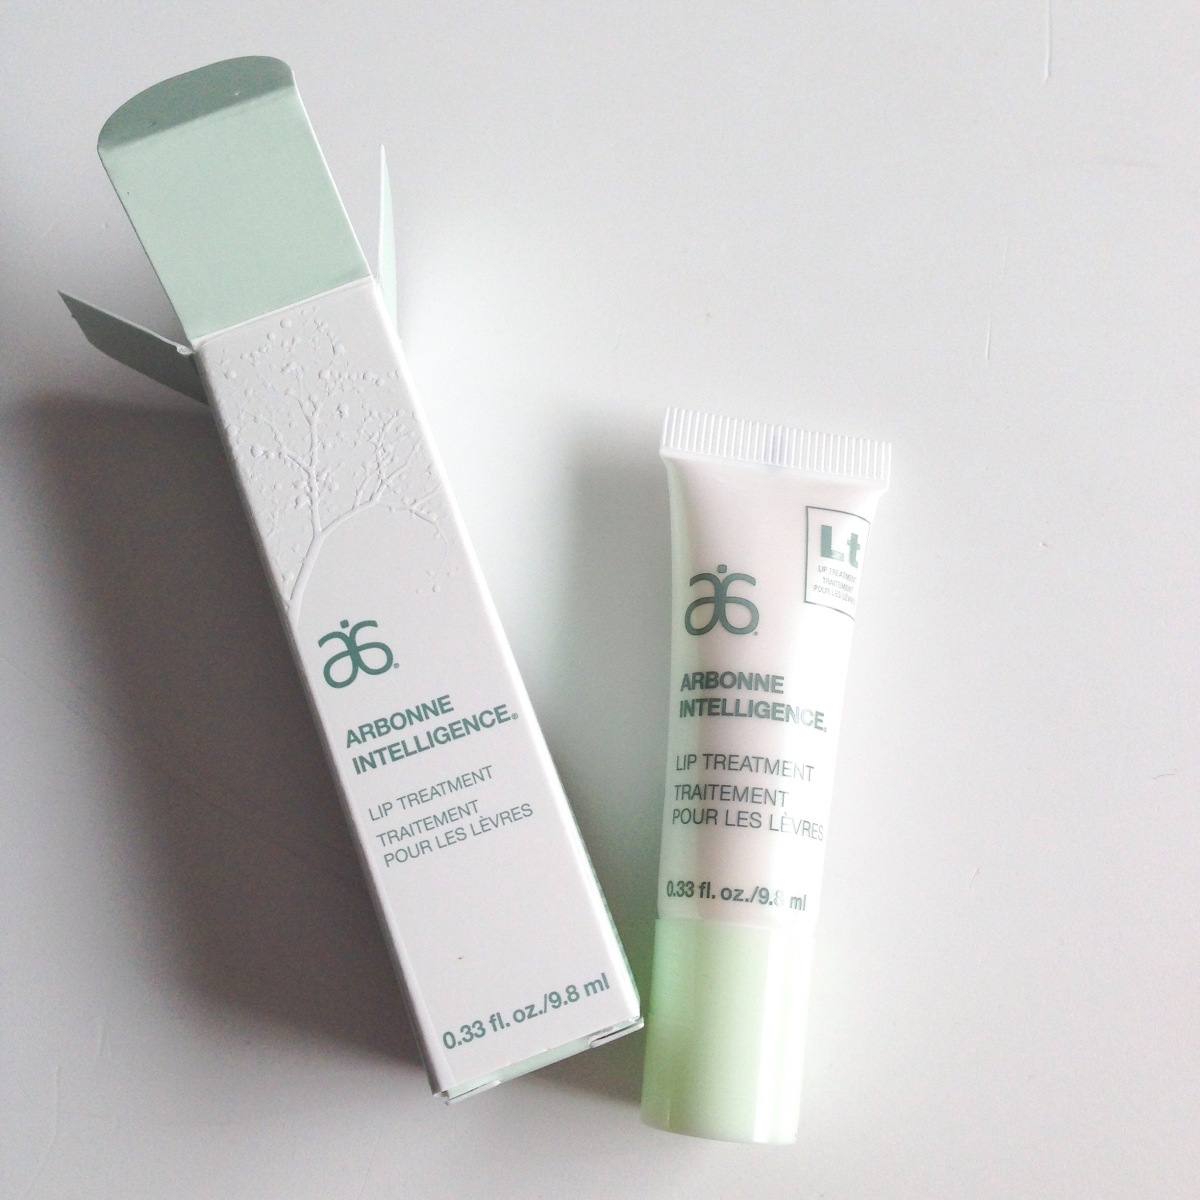 ARBONNE INTELLIGENCE LIP TREATMENT - REVIEW